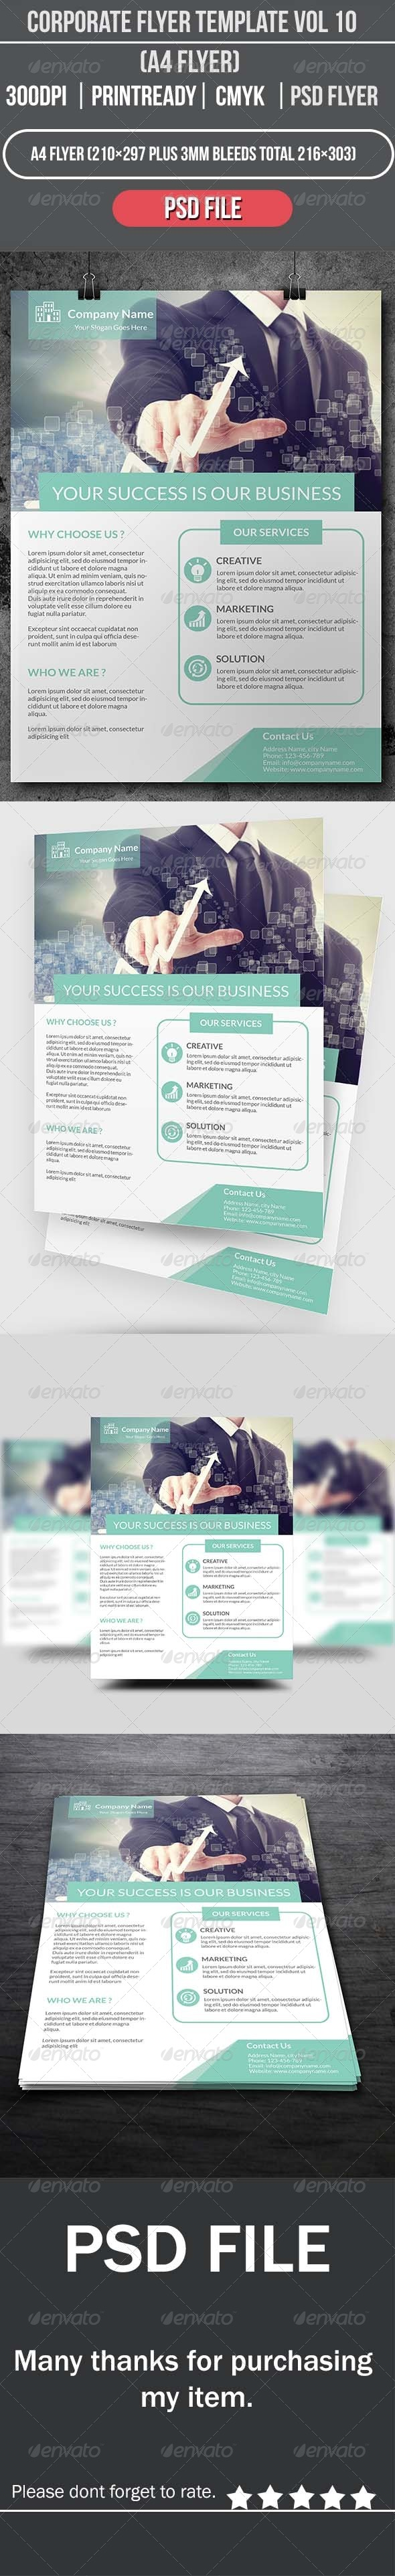 GraphicRiver Corporate Flyer Template Vol 10 8640795